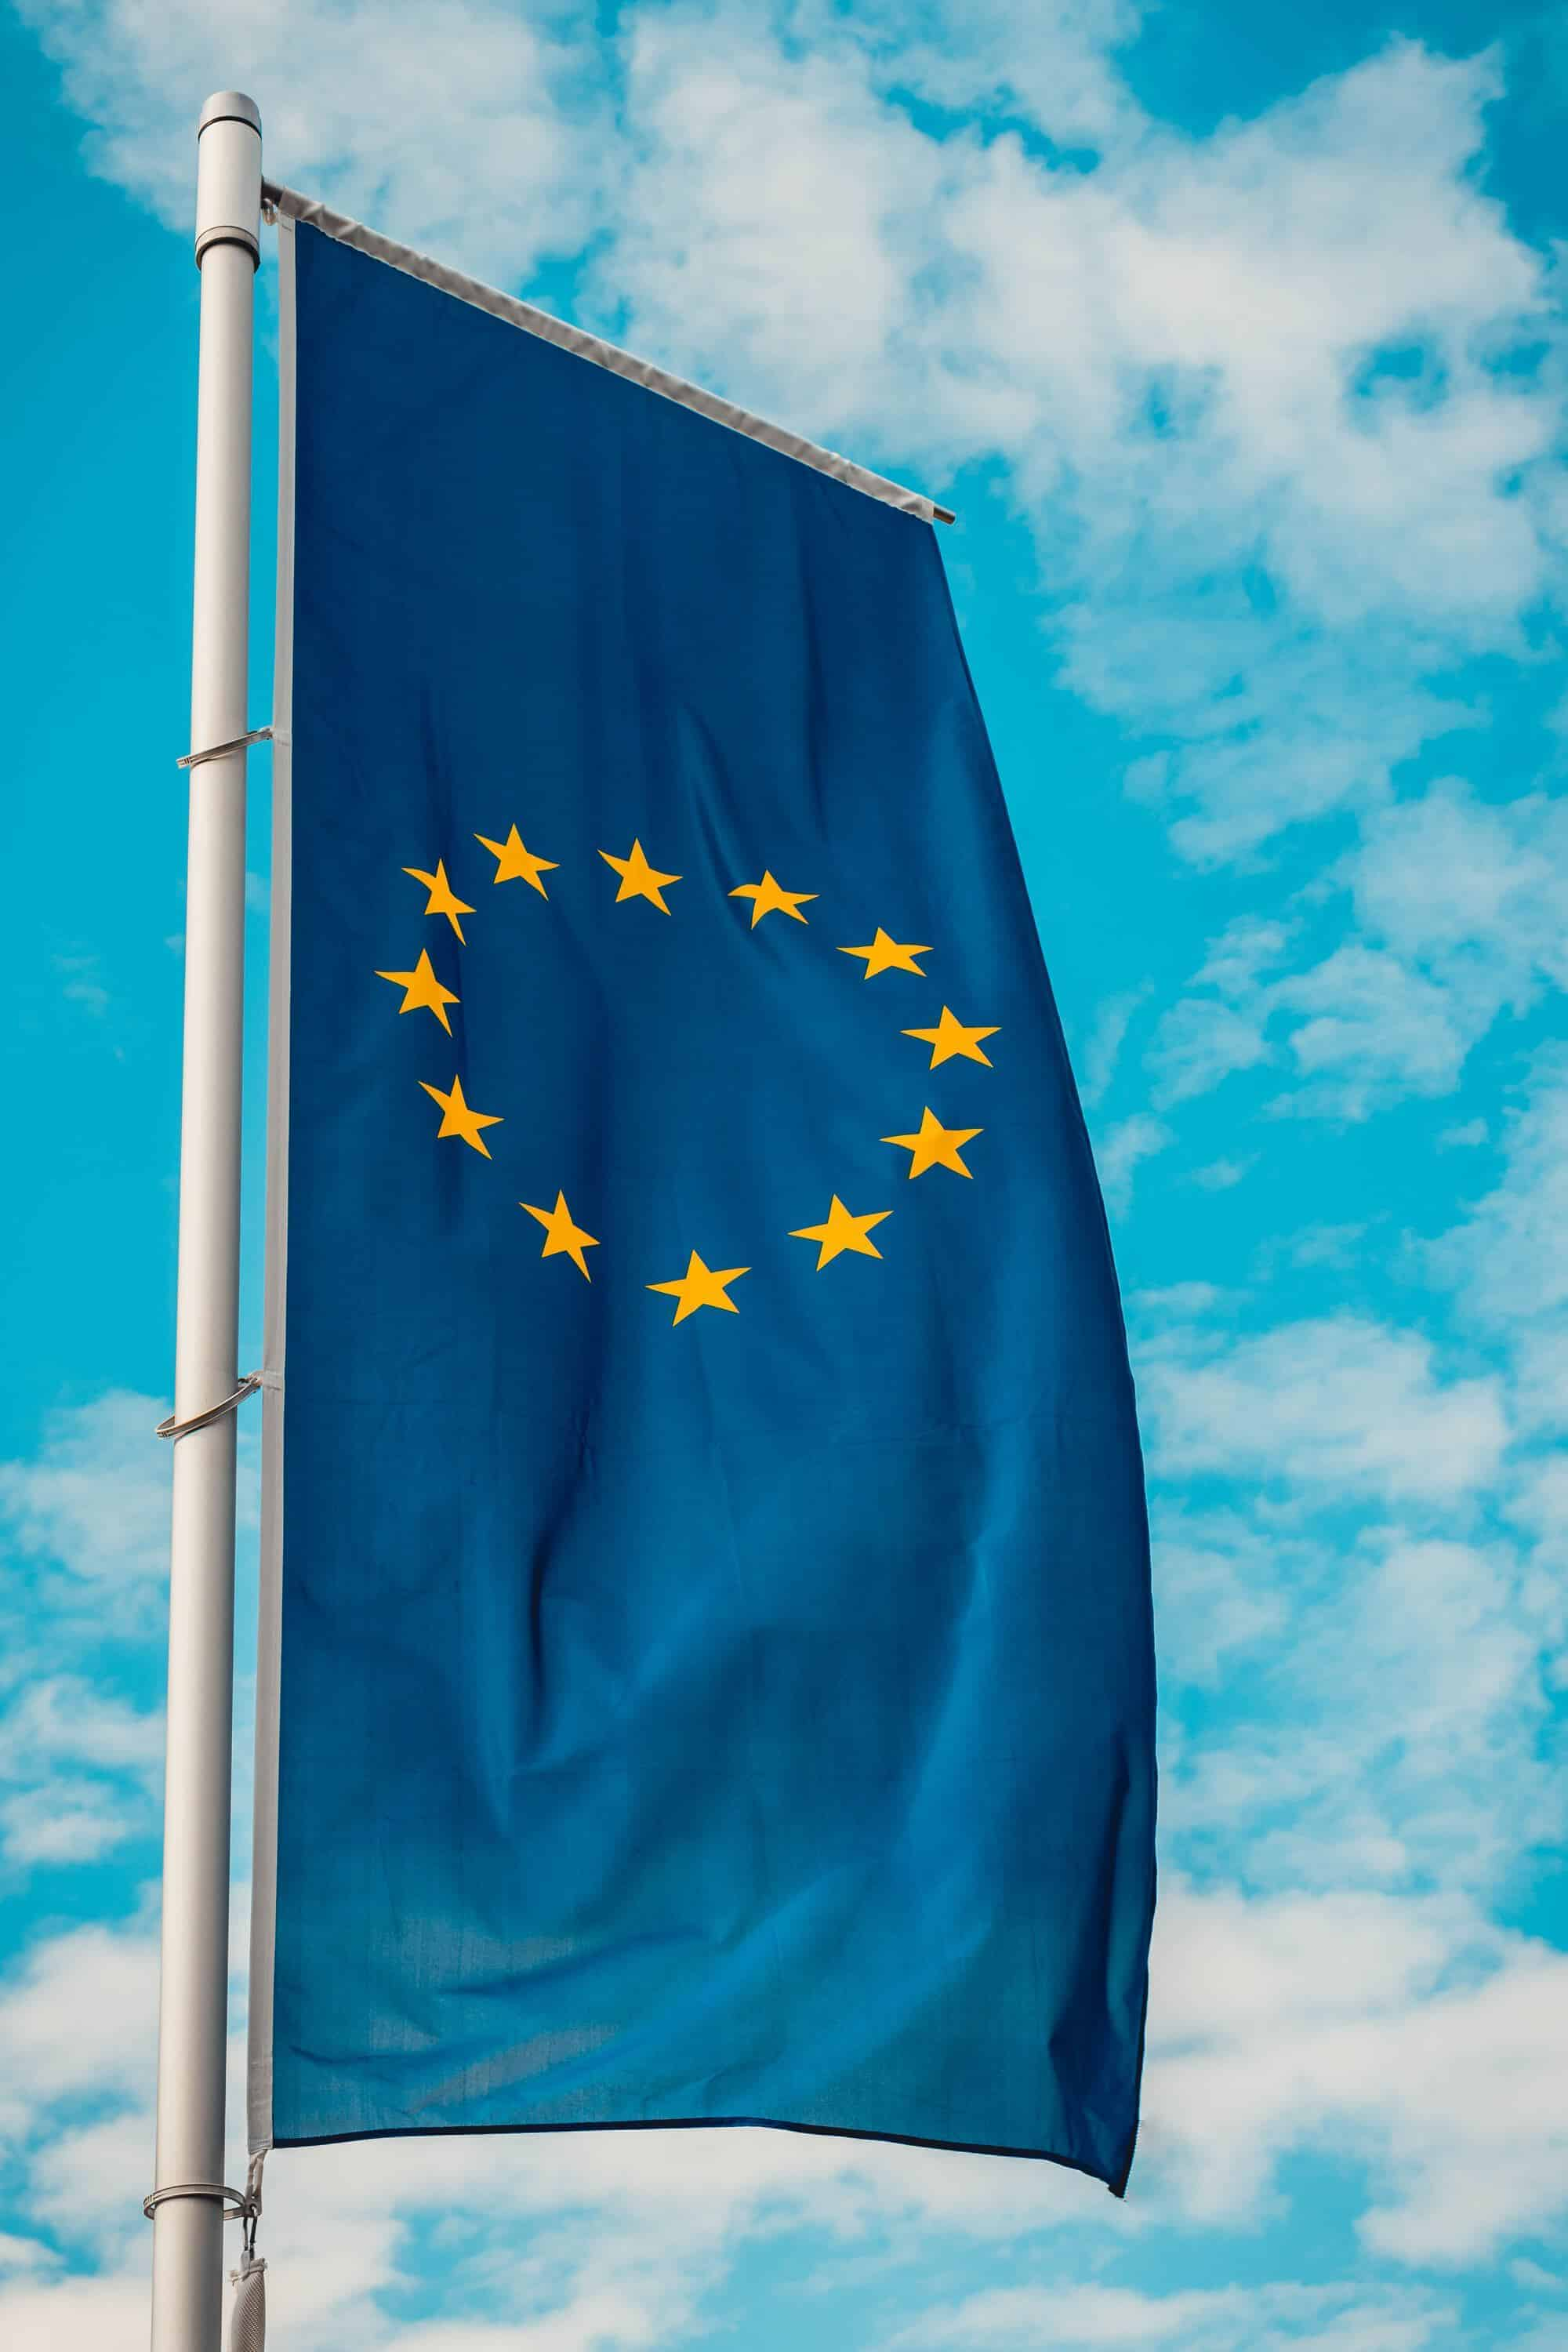 The impact of a no-deal Brexit on REACH for the UK chemical industry